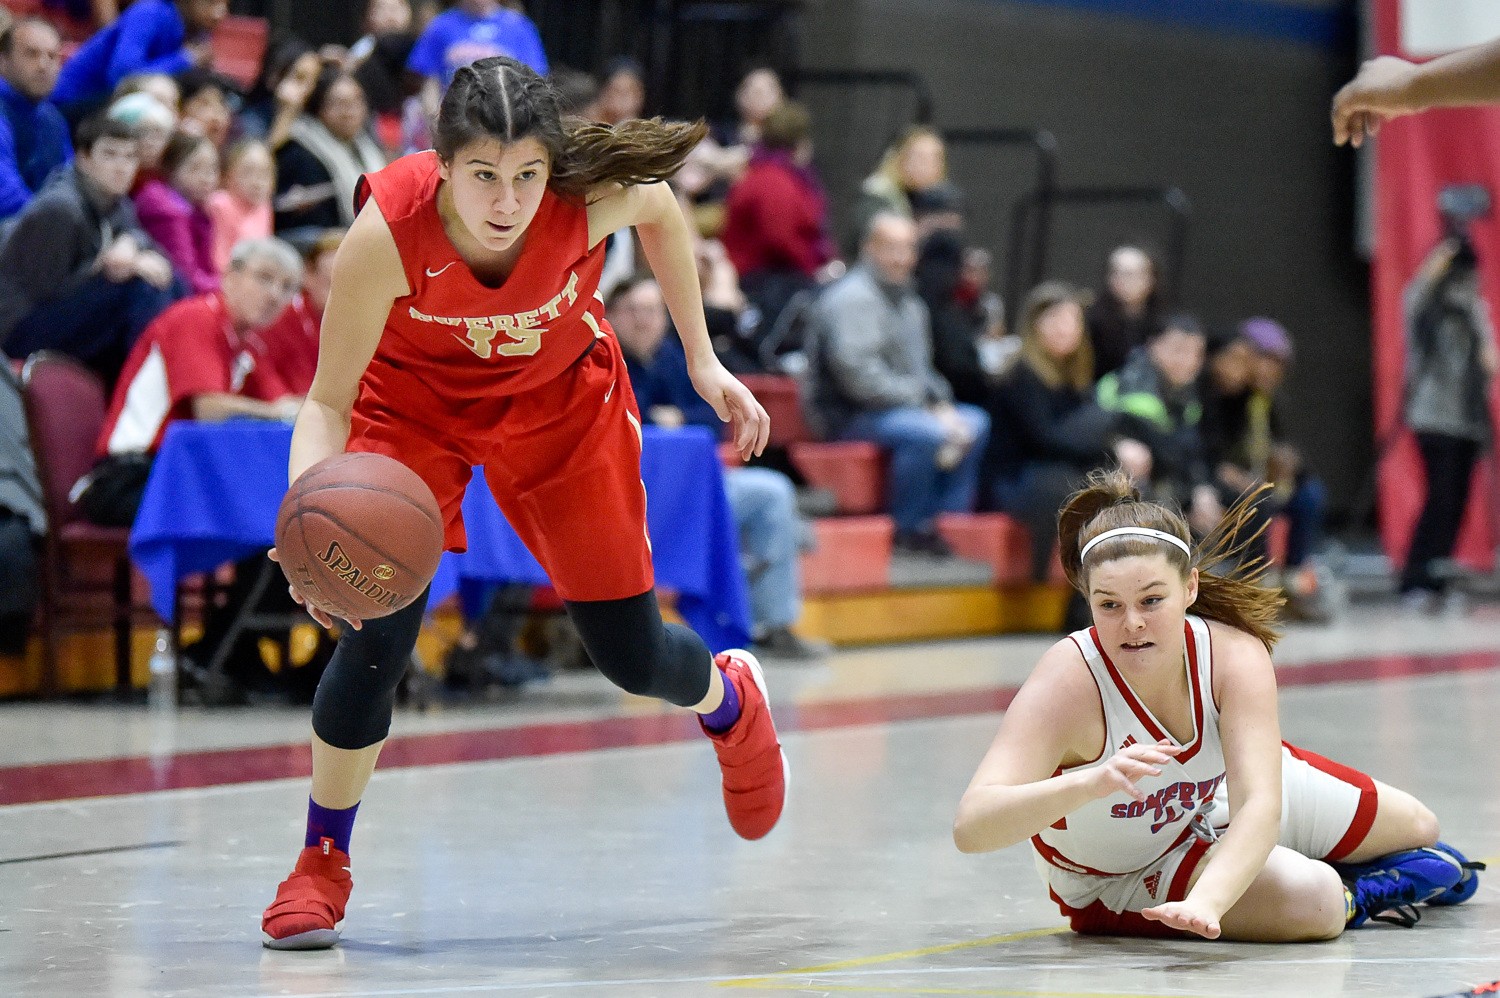 Carolann Cardinale of Everett takes control of a loose ball beating out a Somerville player during their game at Somerville High School on Tuesday, Feb. 13, 2018.